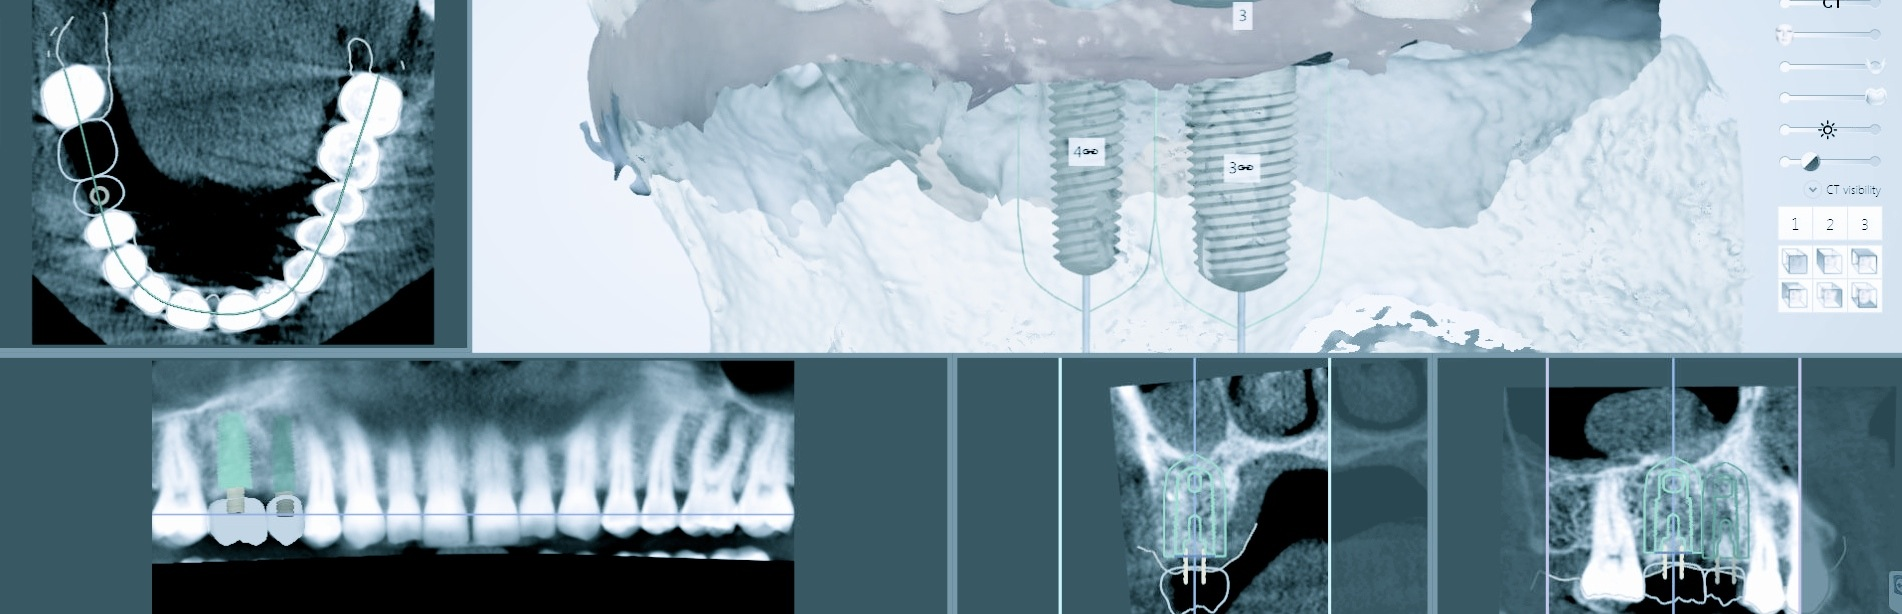 Cone Beam Dental Ct Scan Cbct Cone Beam Dental Ct Scan